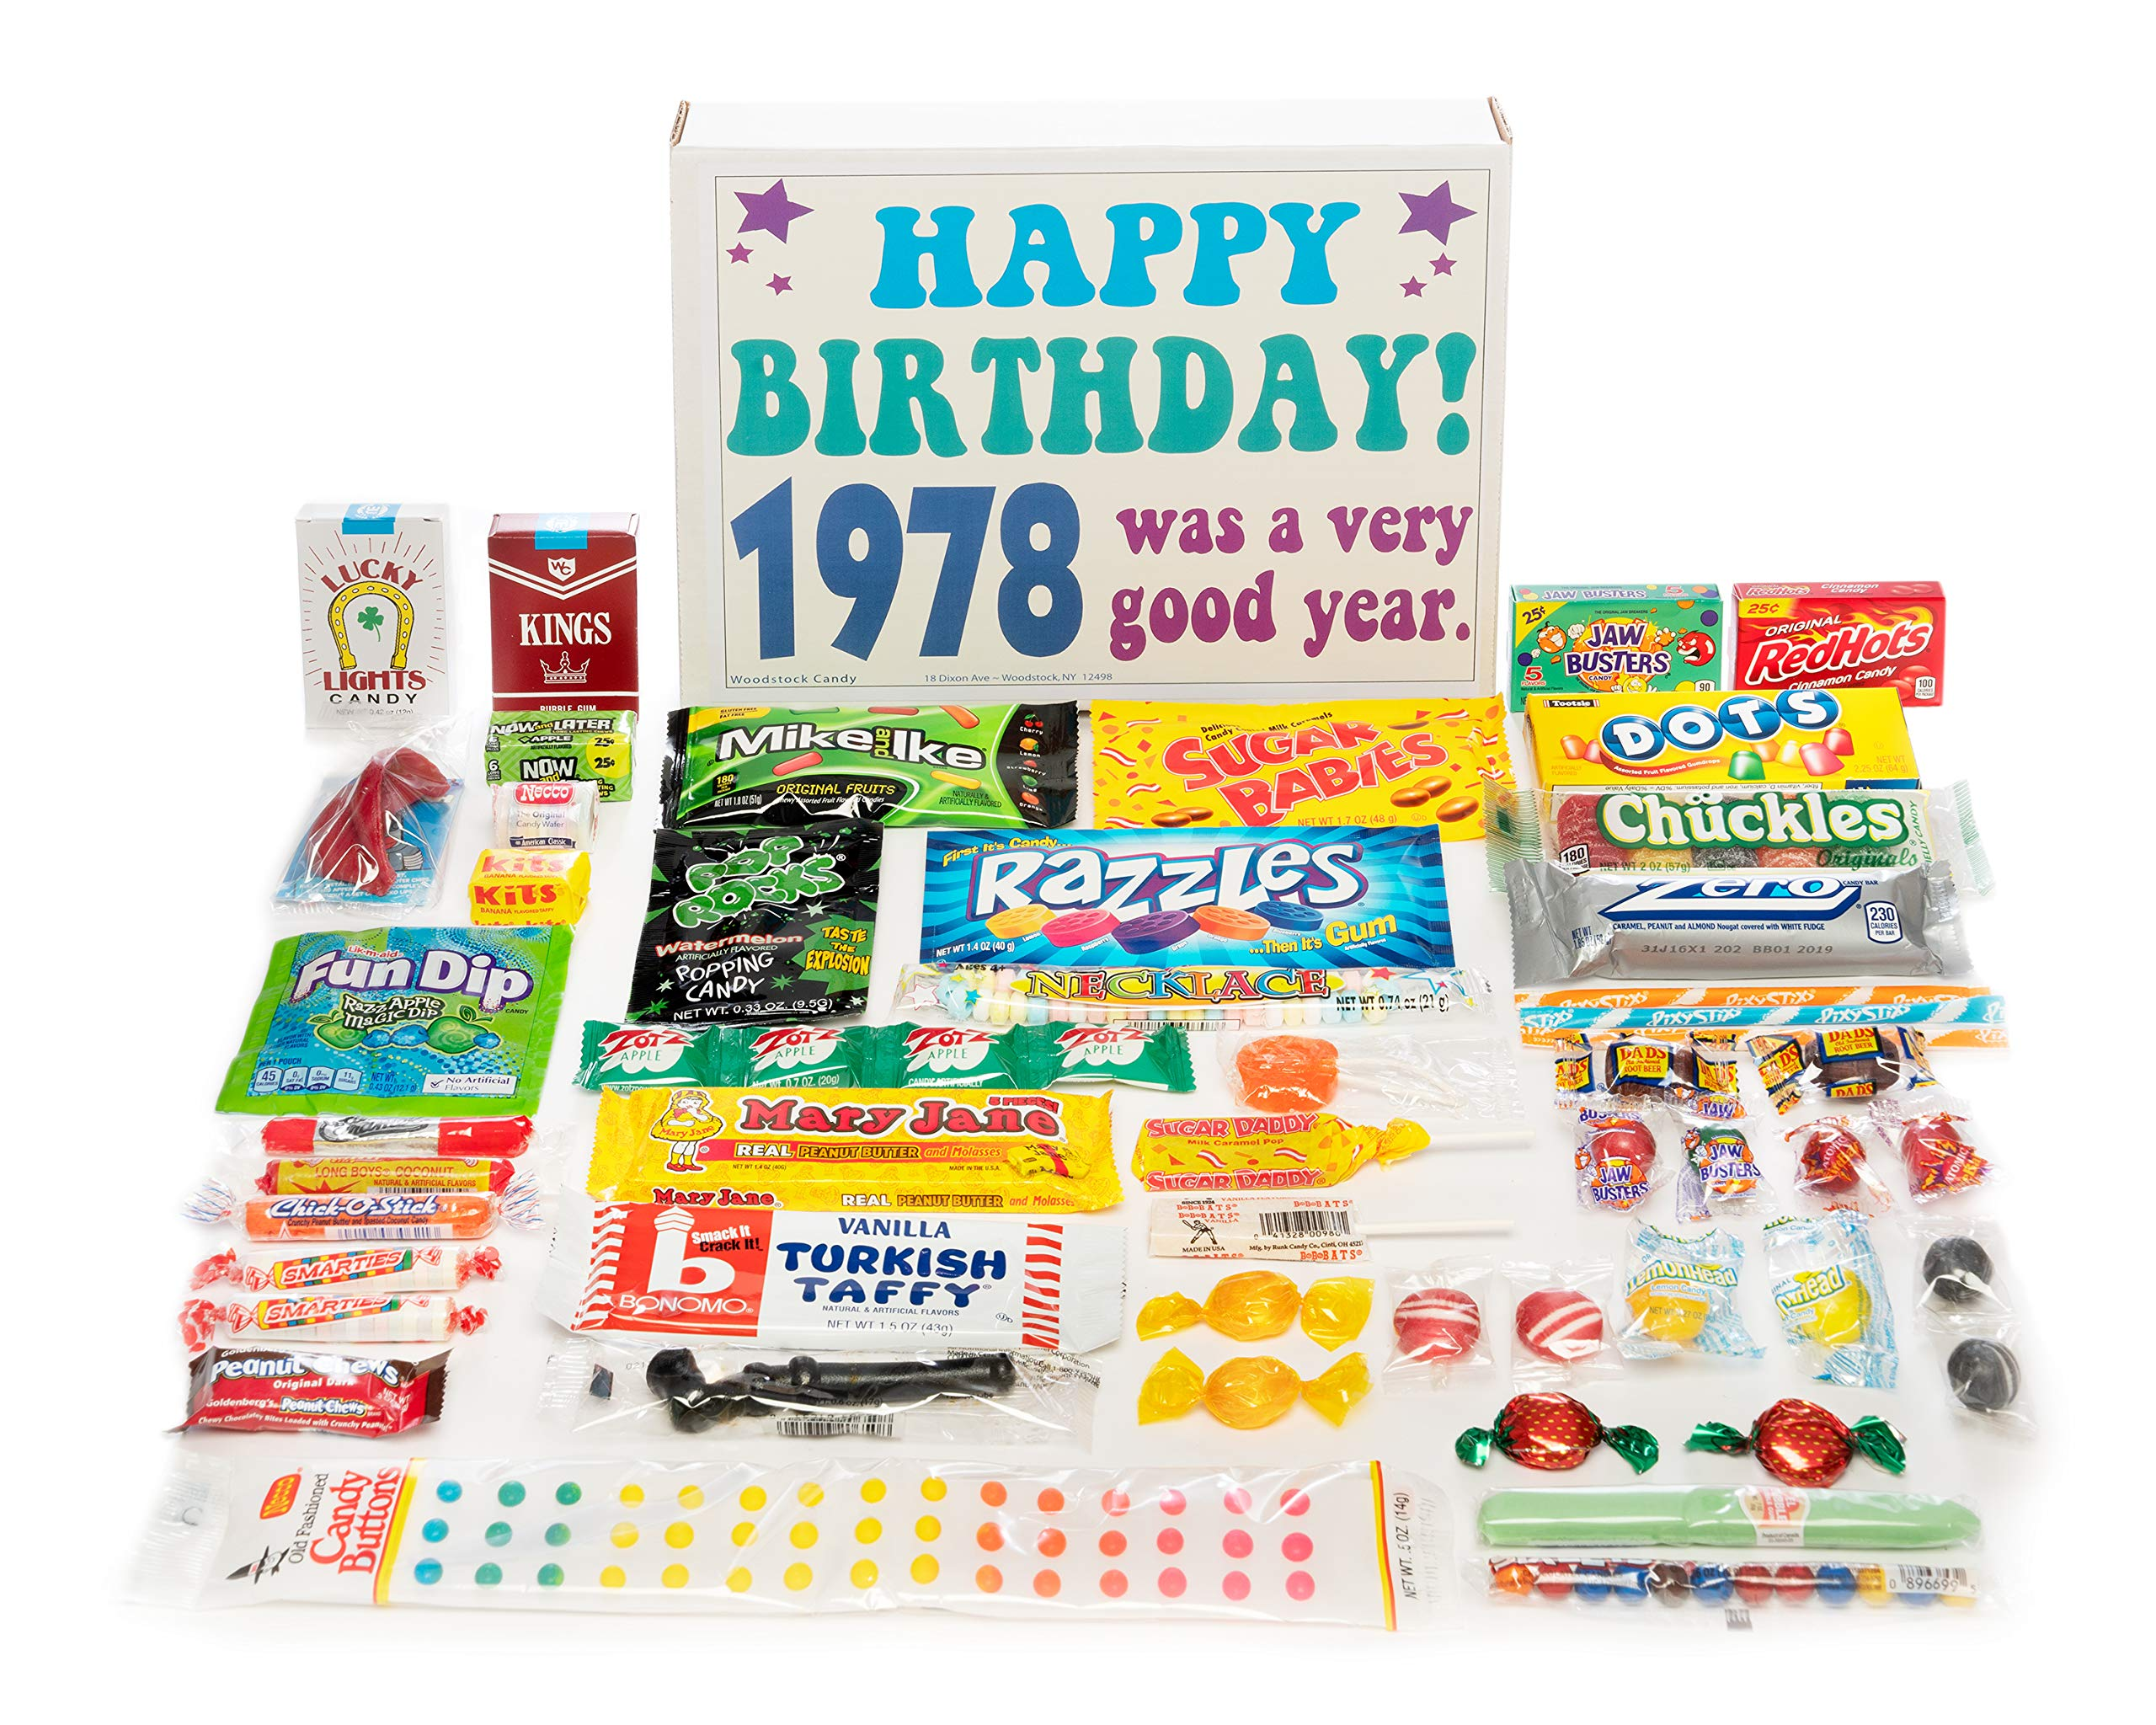 Woodstock Candy 1978 40th Birthday Gift Box Nostalgic Retro Assortment For 40 Year Old